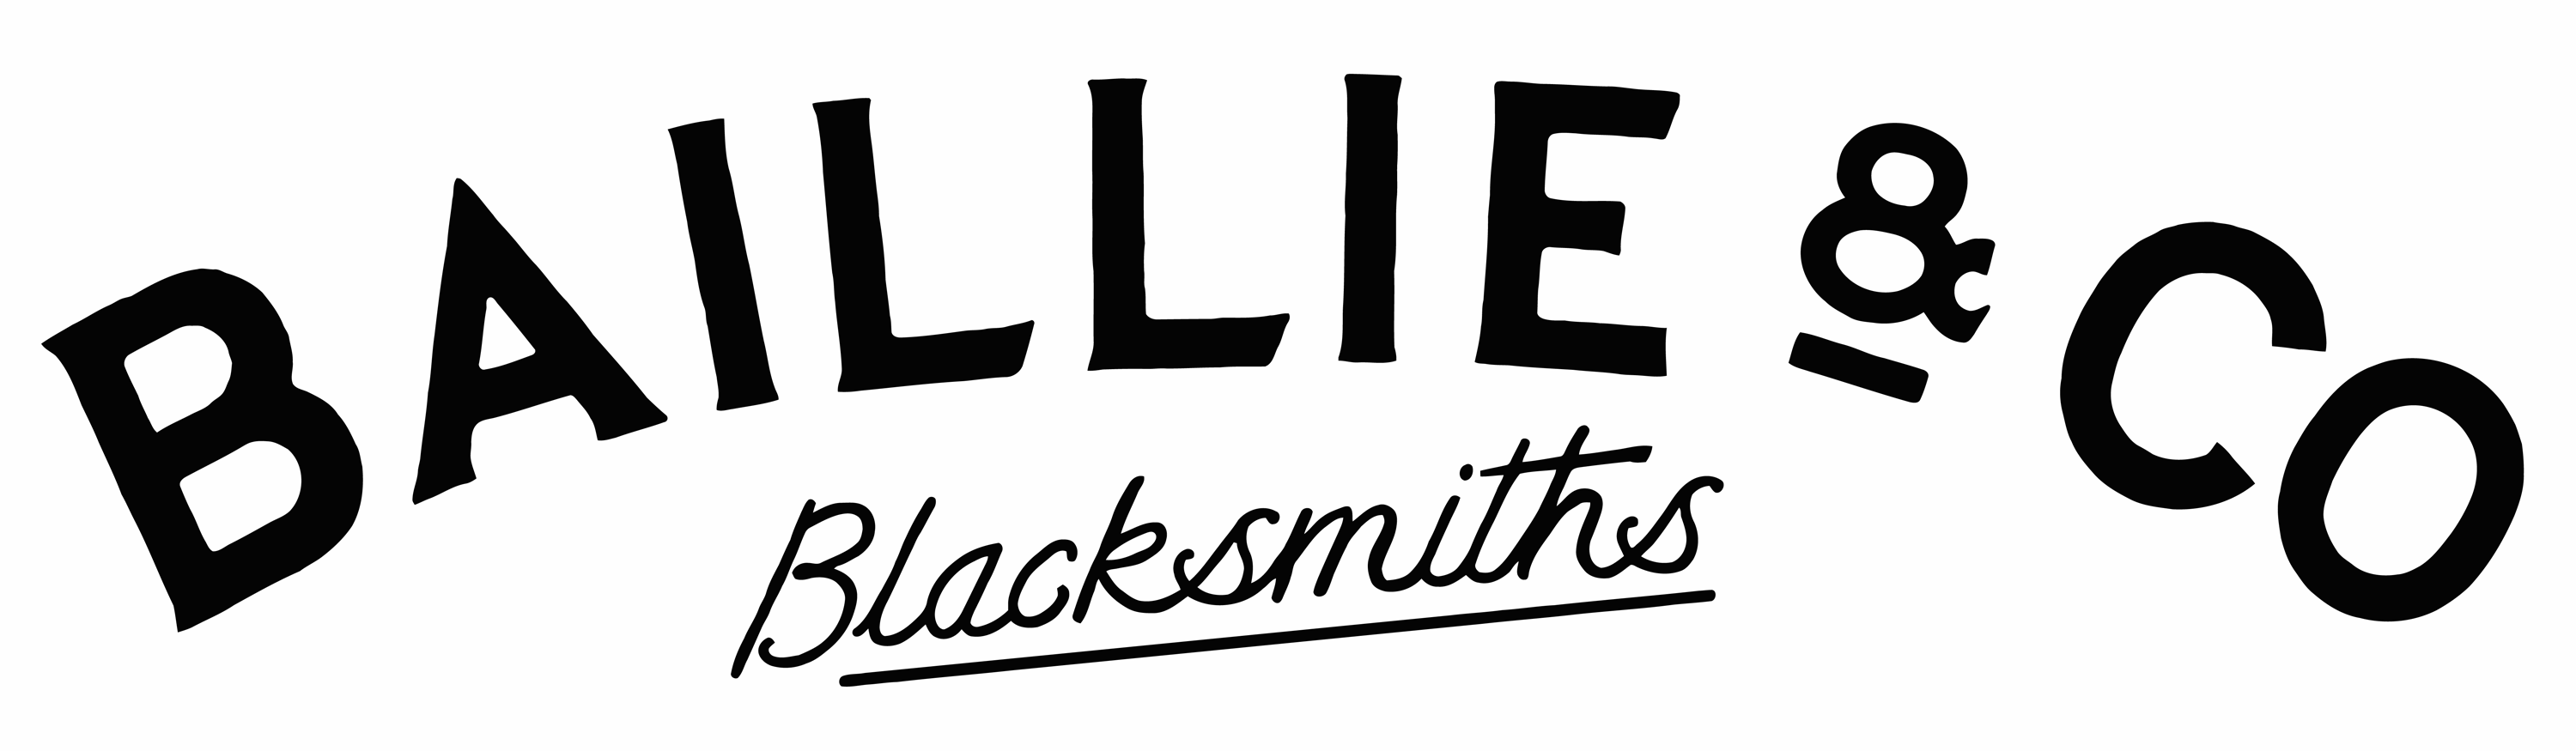 February 2016 - Baillie & Co Blacksmiths